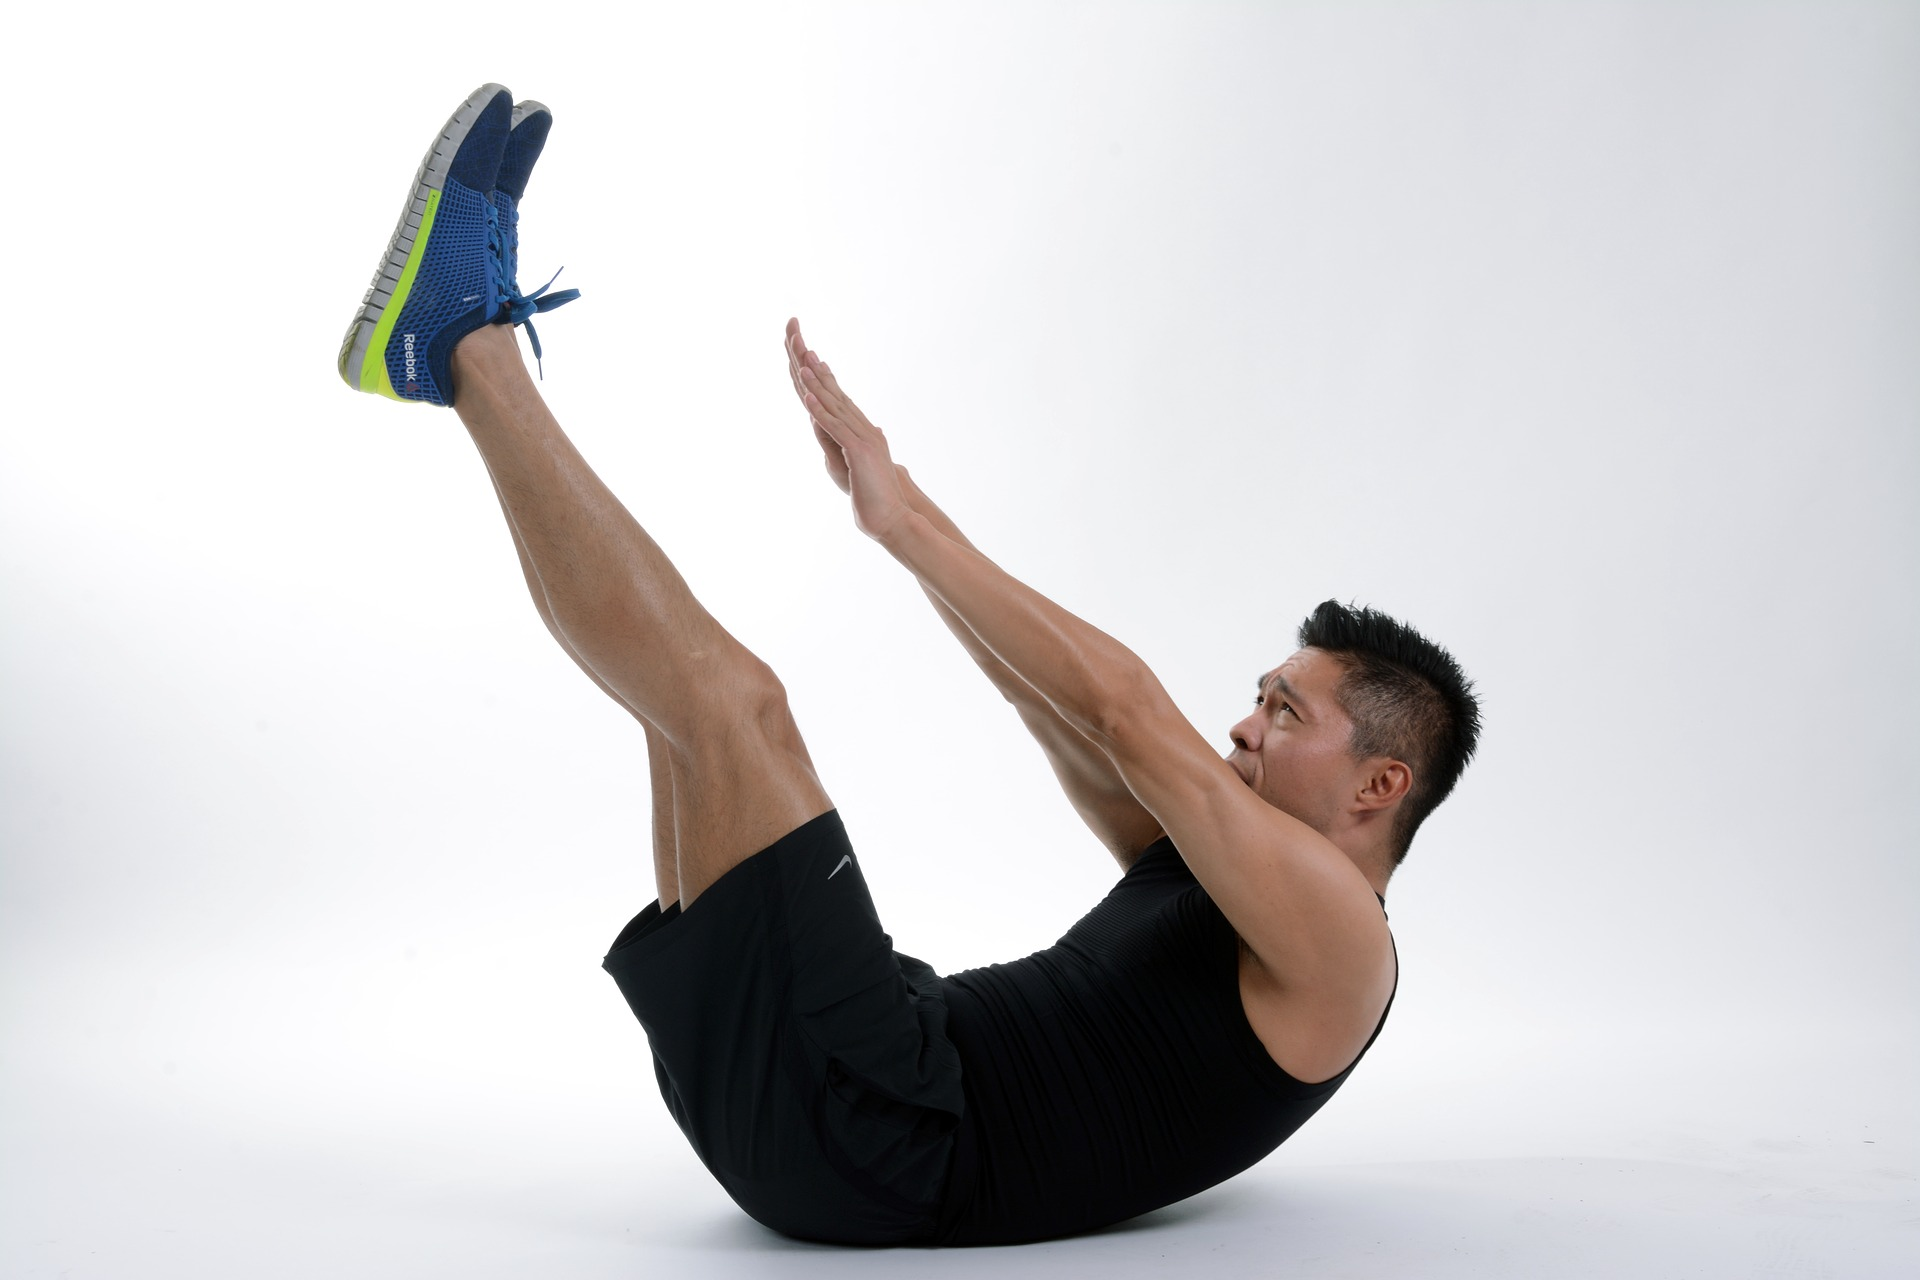 Man exercising with his legs raised while on his back reaching towards his feet with both hands